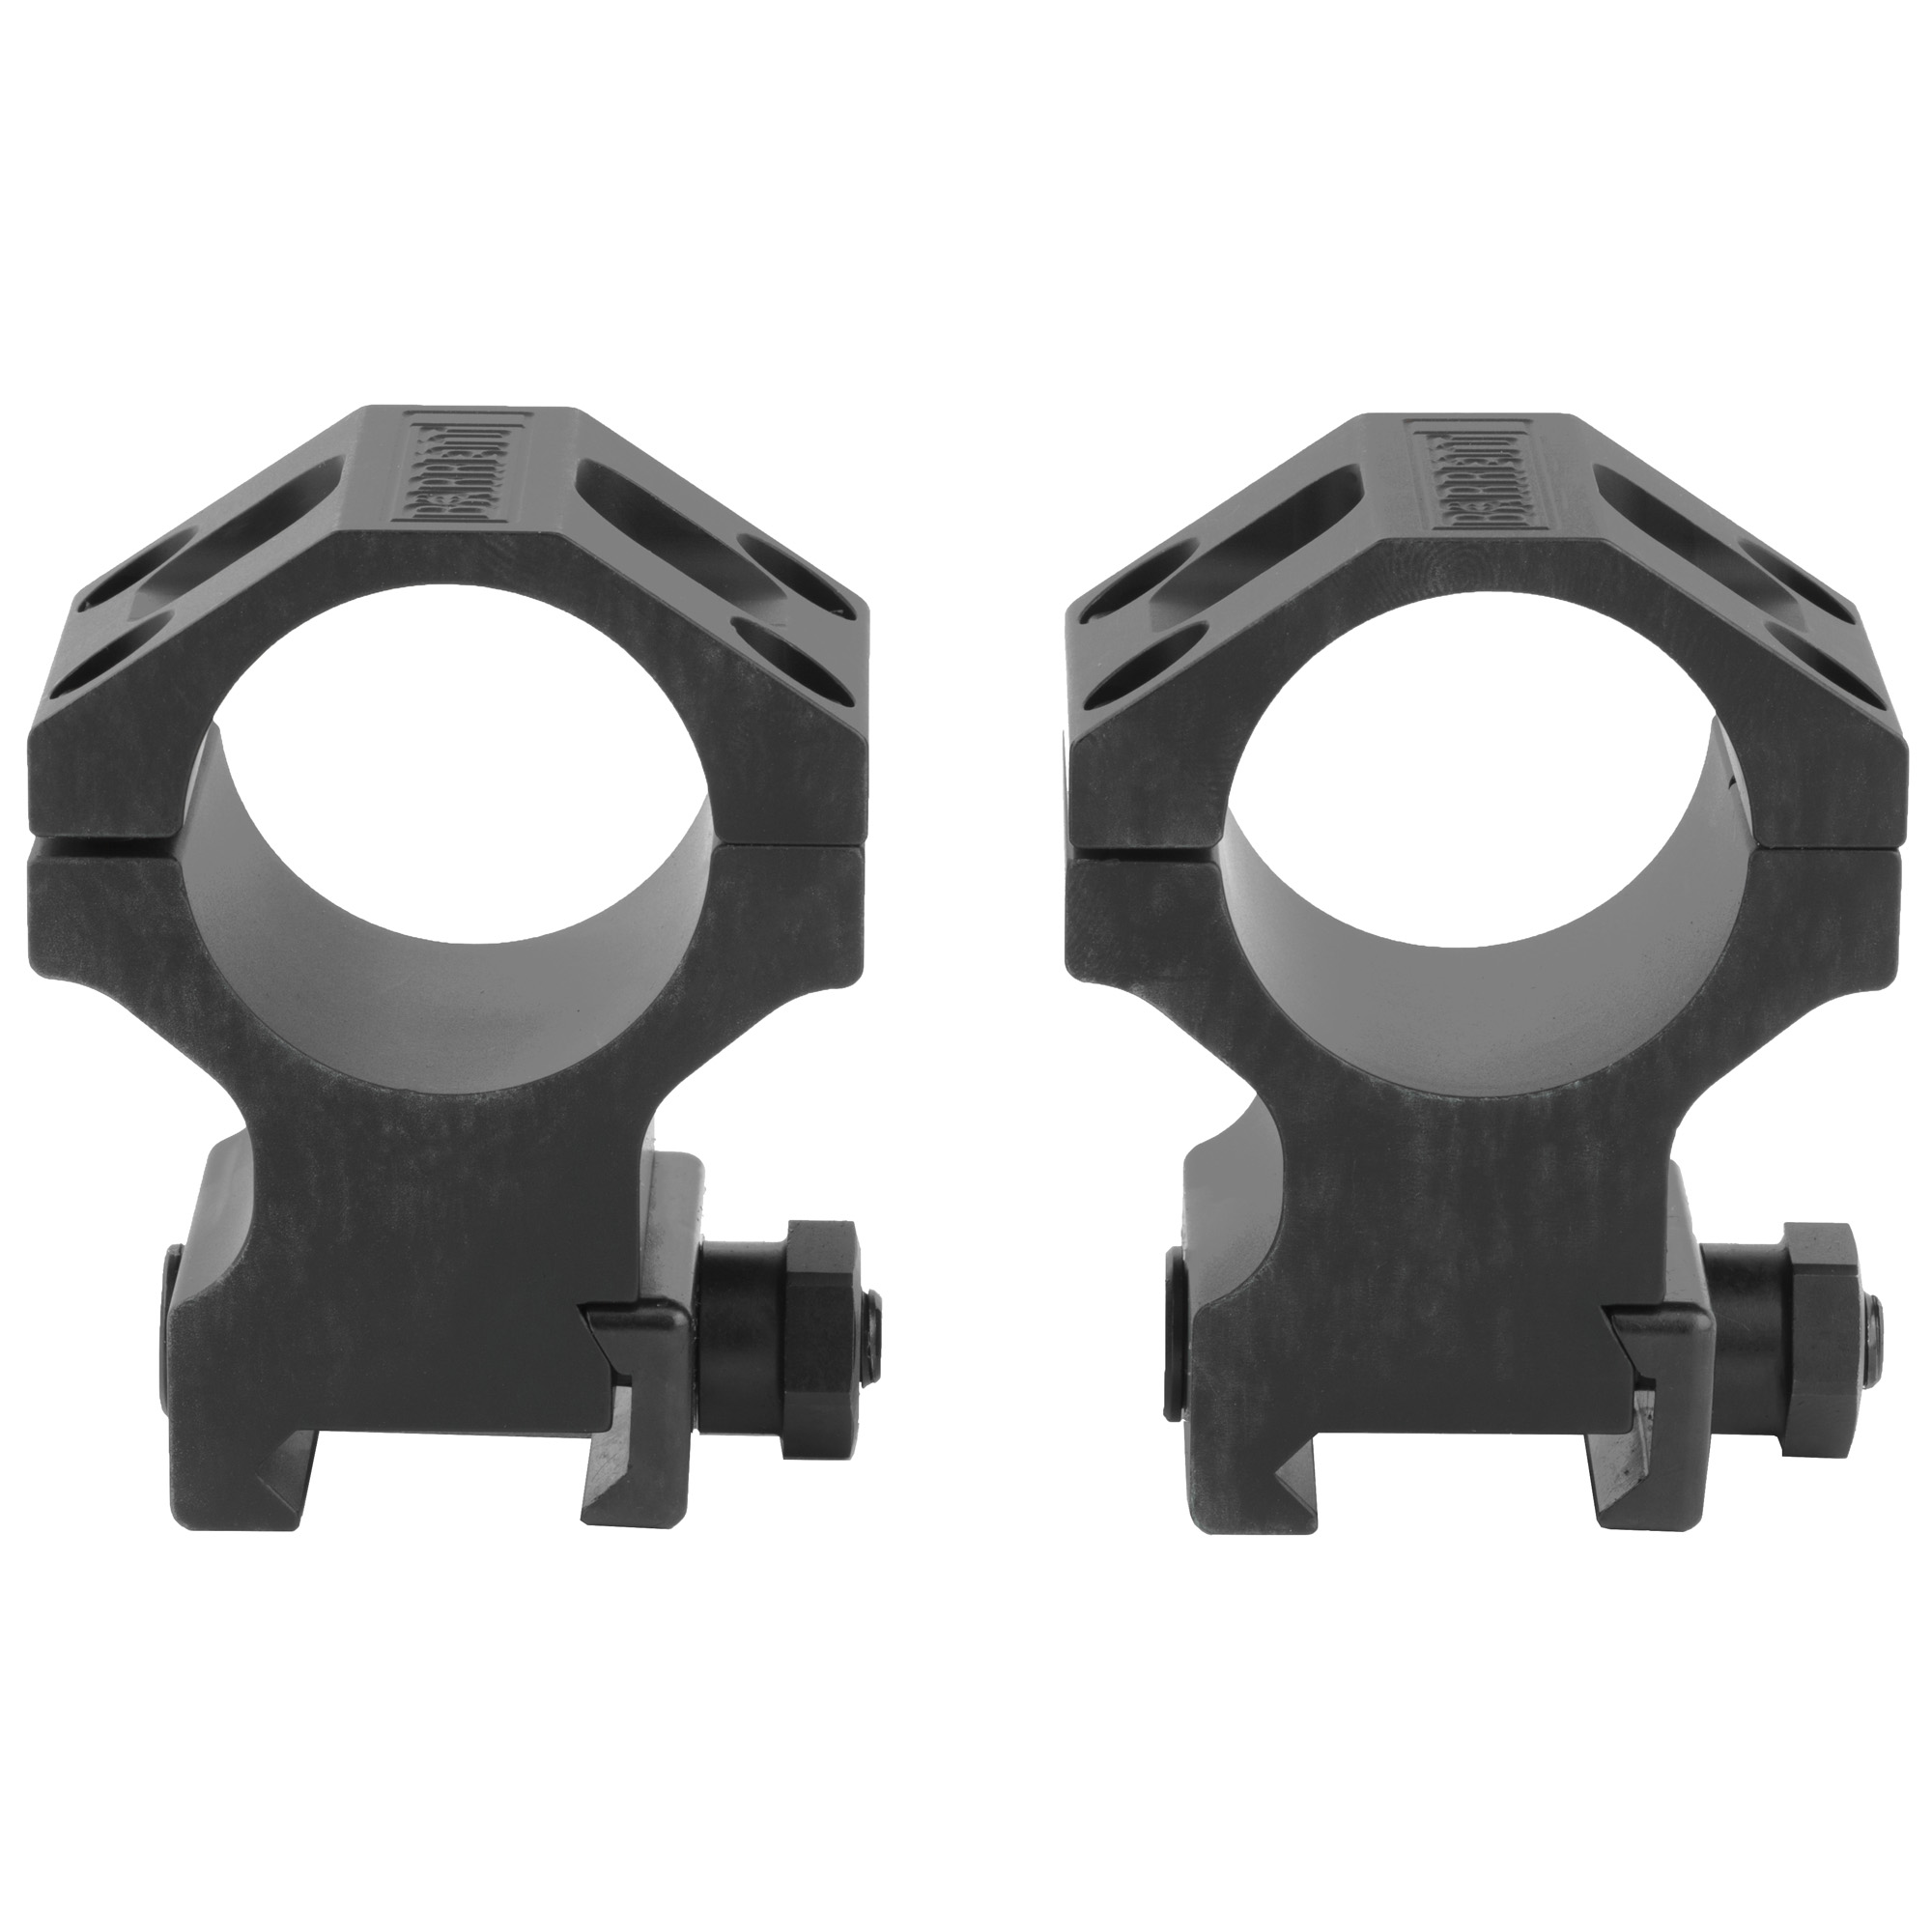 "Barrett Rings Ultra High 1.4"" 30mm B"